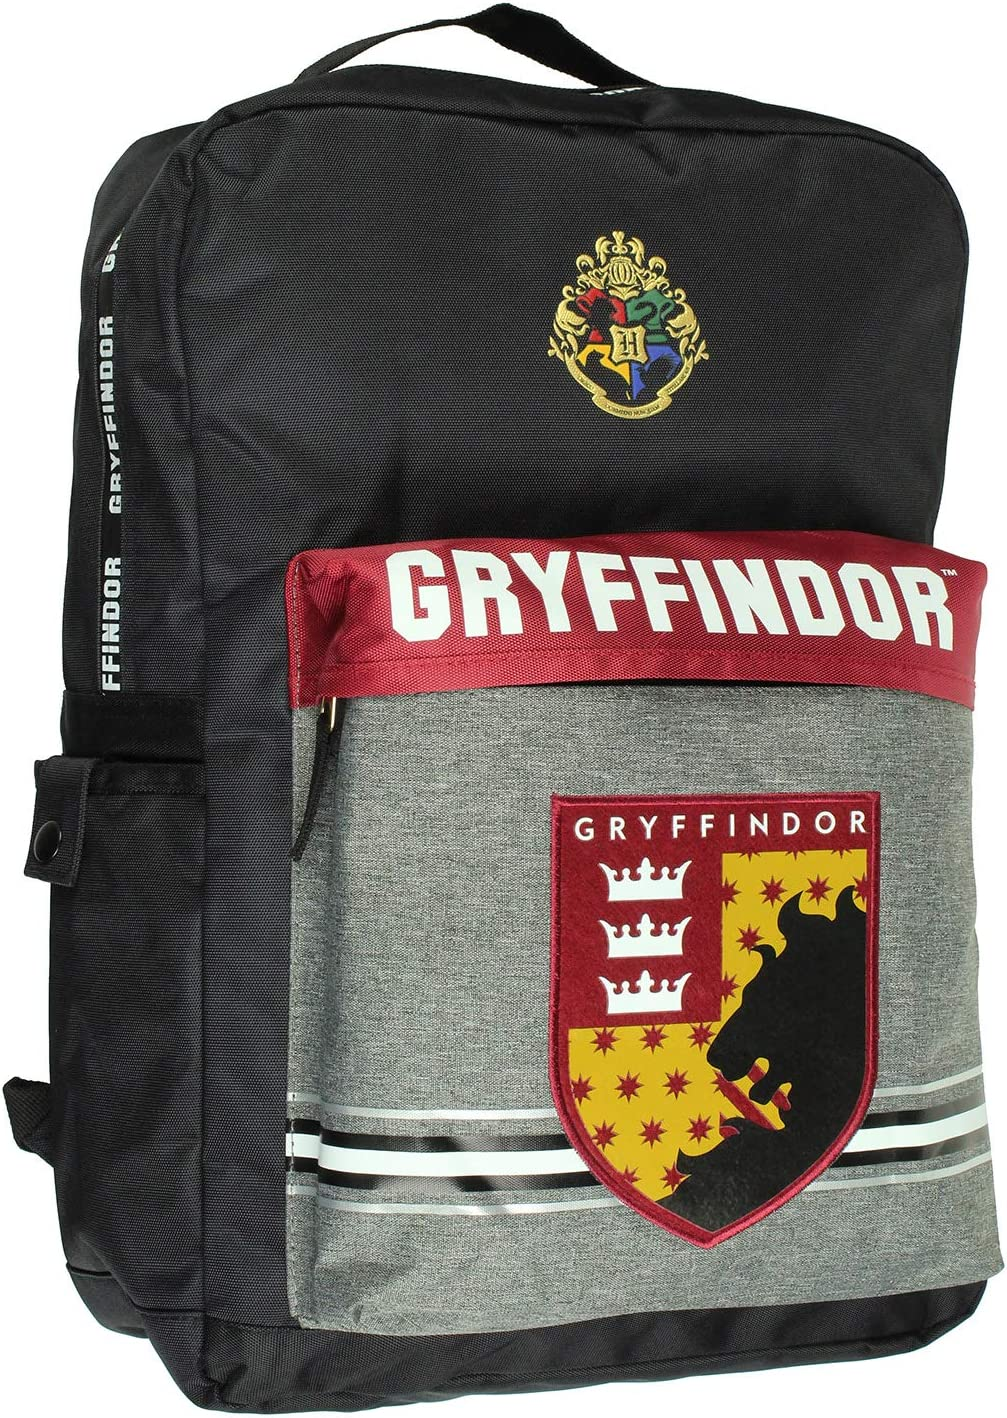 Harry Potter Gryffindor Backpack Hogwarts Houses Travel Book Bag Laptop Backpack